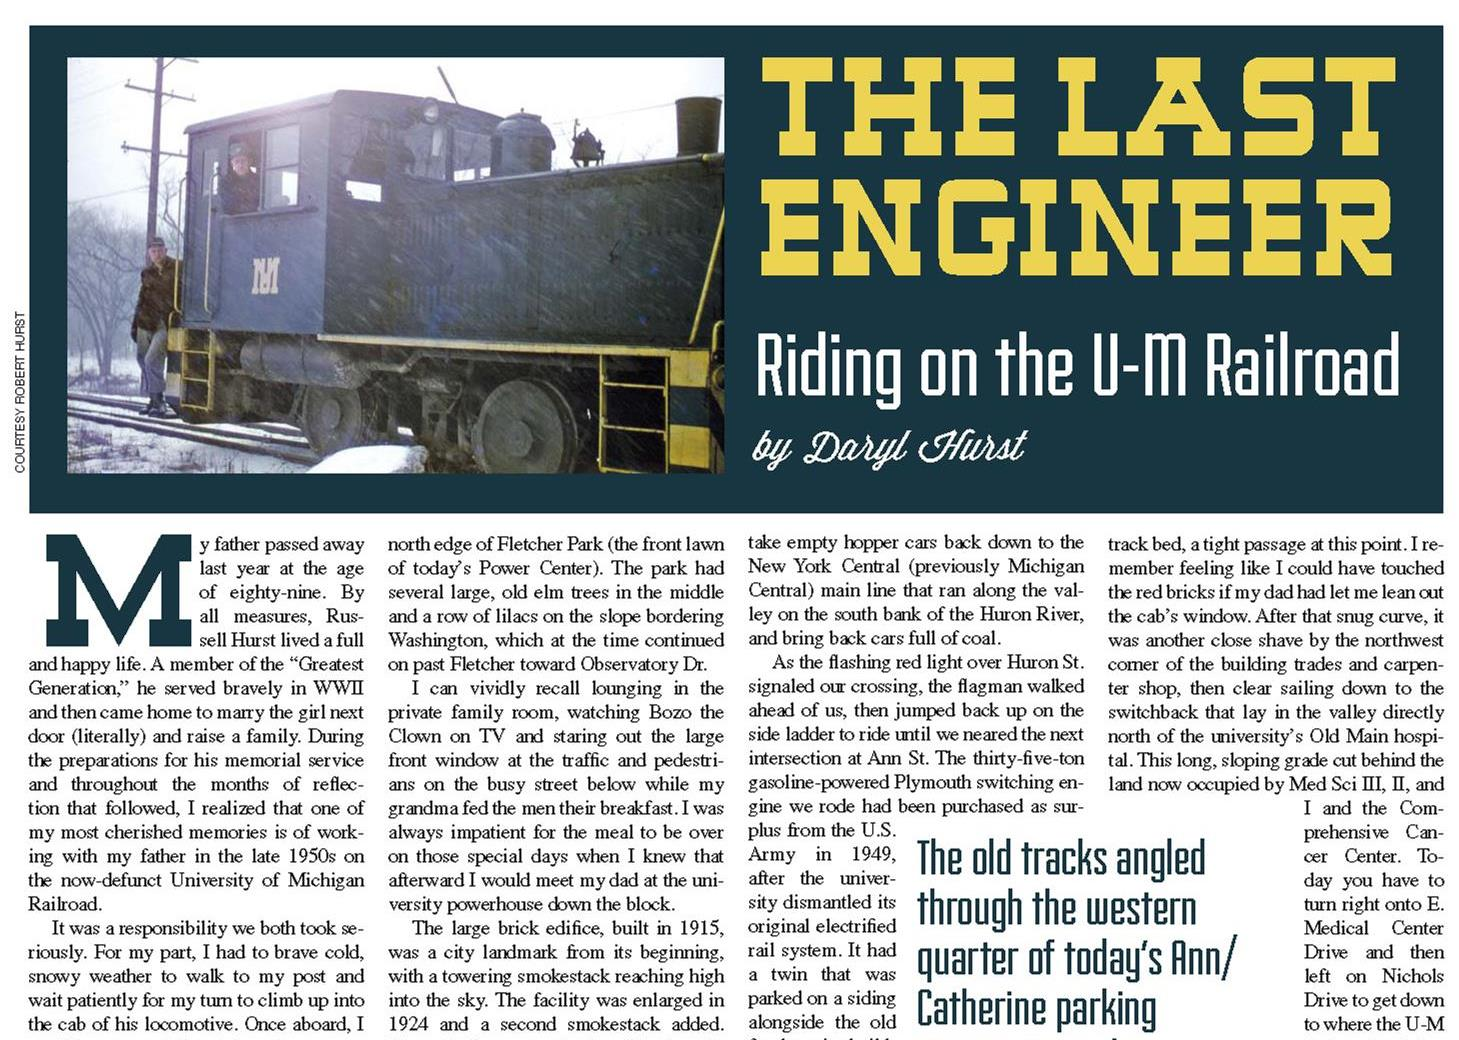 The Last Engineer  from the  May 2013  issue.